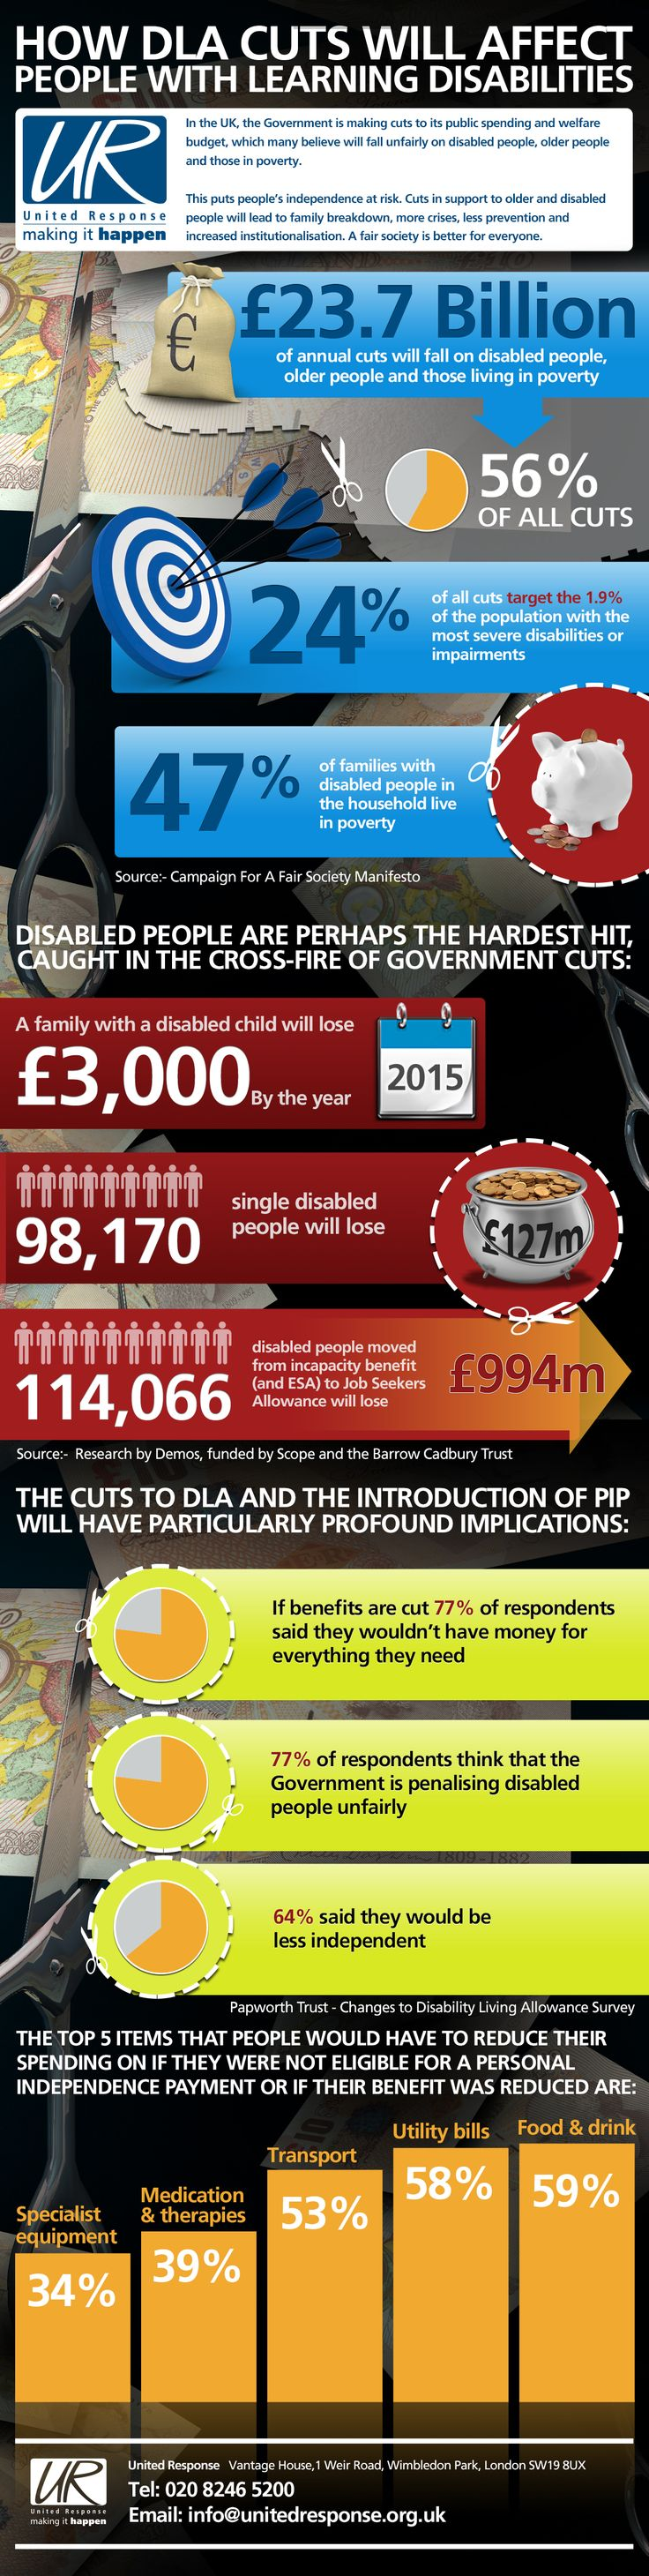 How DLA cuts will affect people with learning disabilties. United Response's infographic shows how its clients will face even greater challenges to their independence due to cuts in the Disabled Living Allowance. It's not a direct fundraising ask, but it does convey why UR's services are going to be even more in demand.